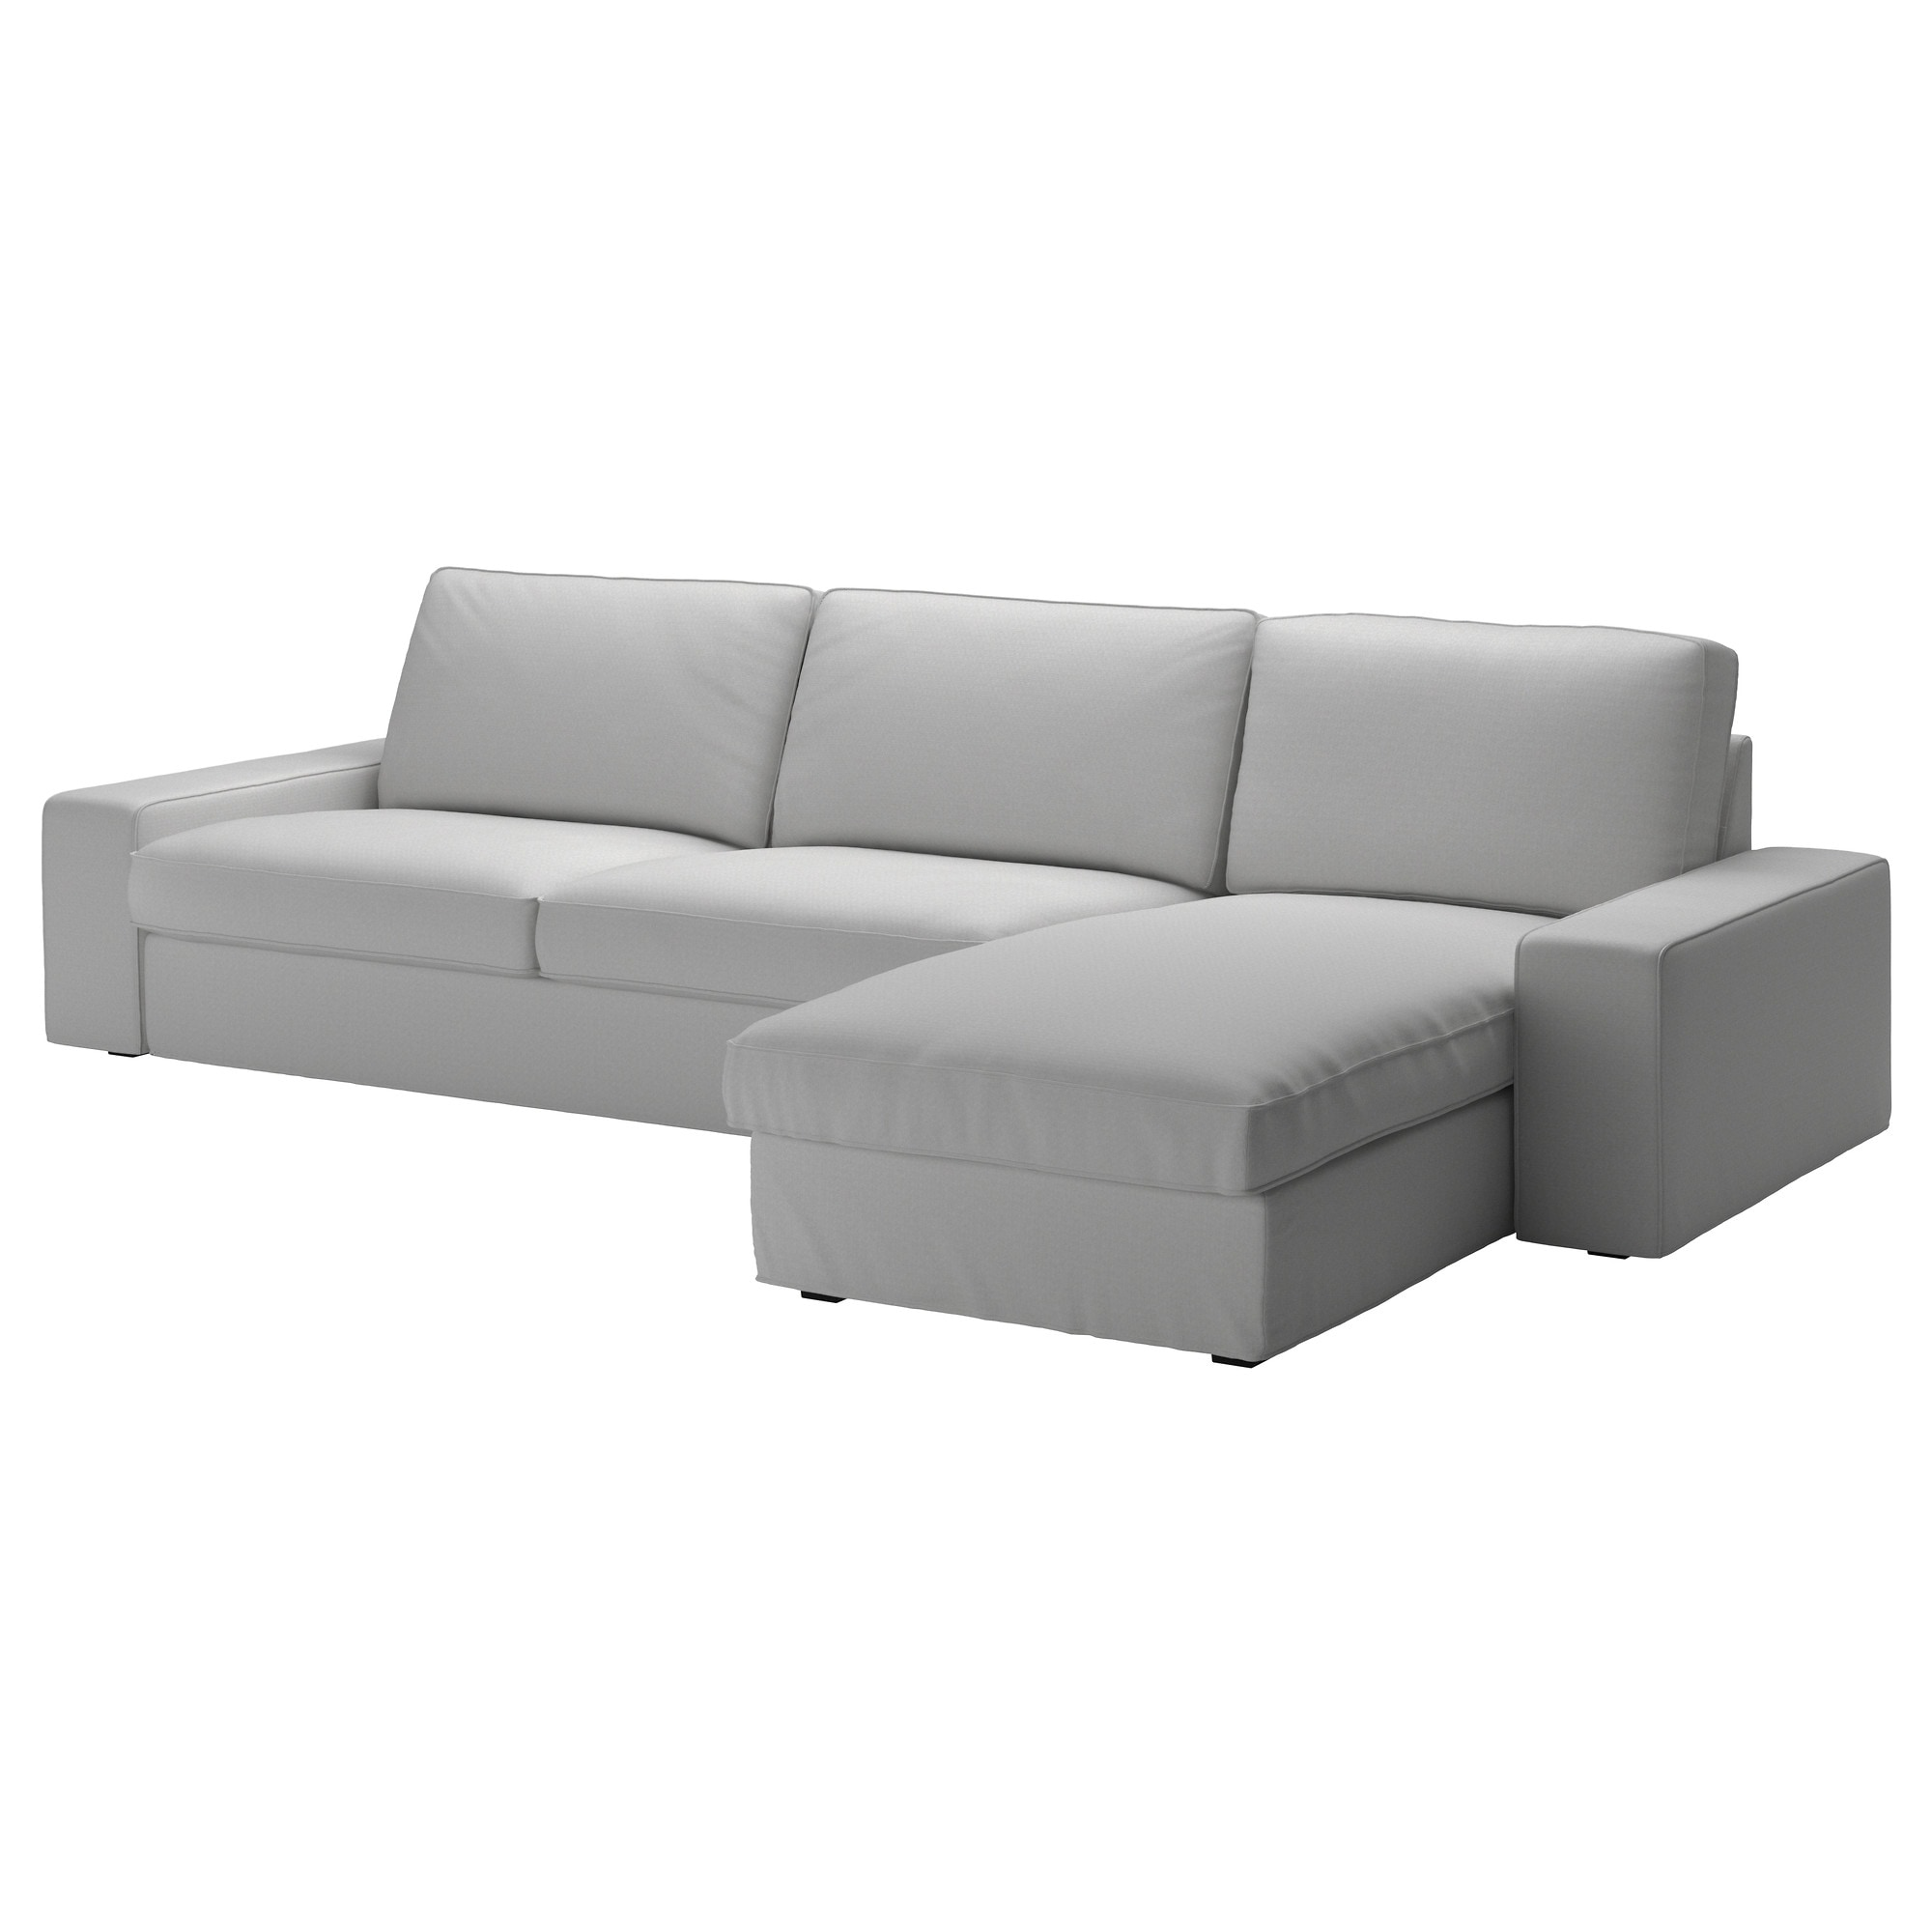 KIVIK Three seat sofa and chaise longue Orrsta light grey IKEA